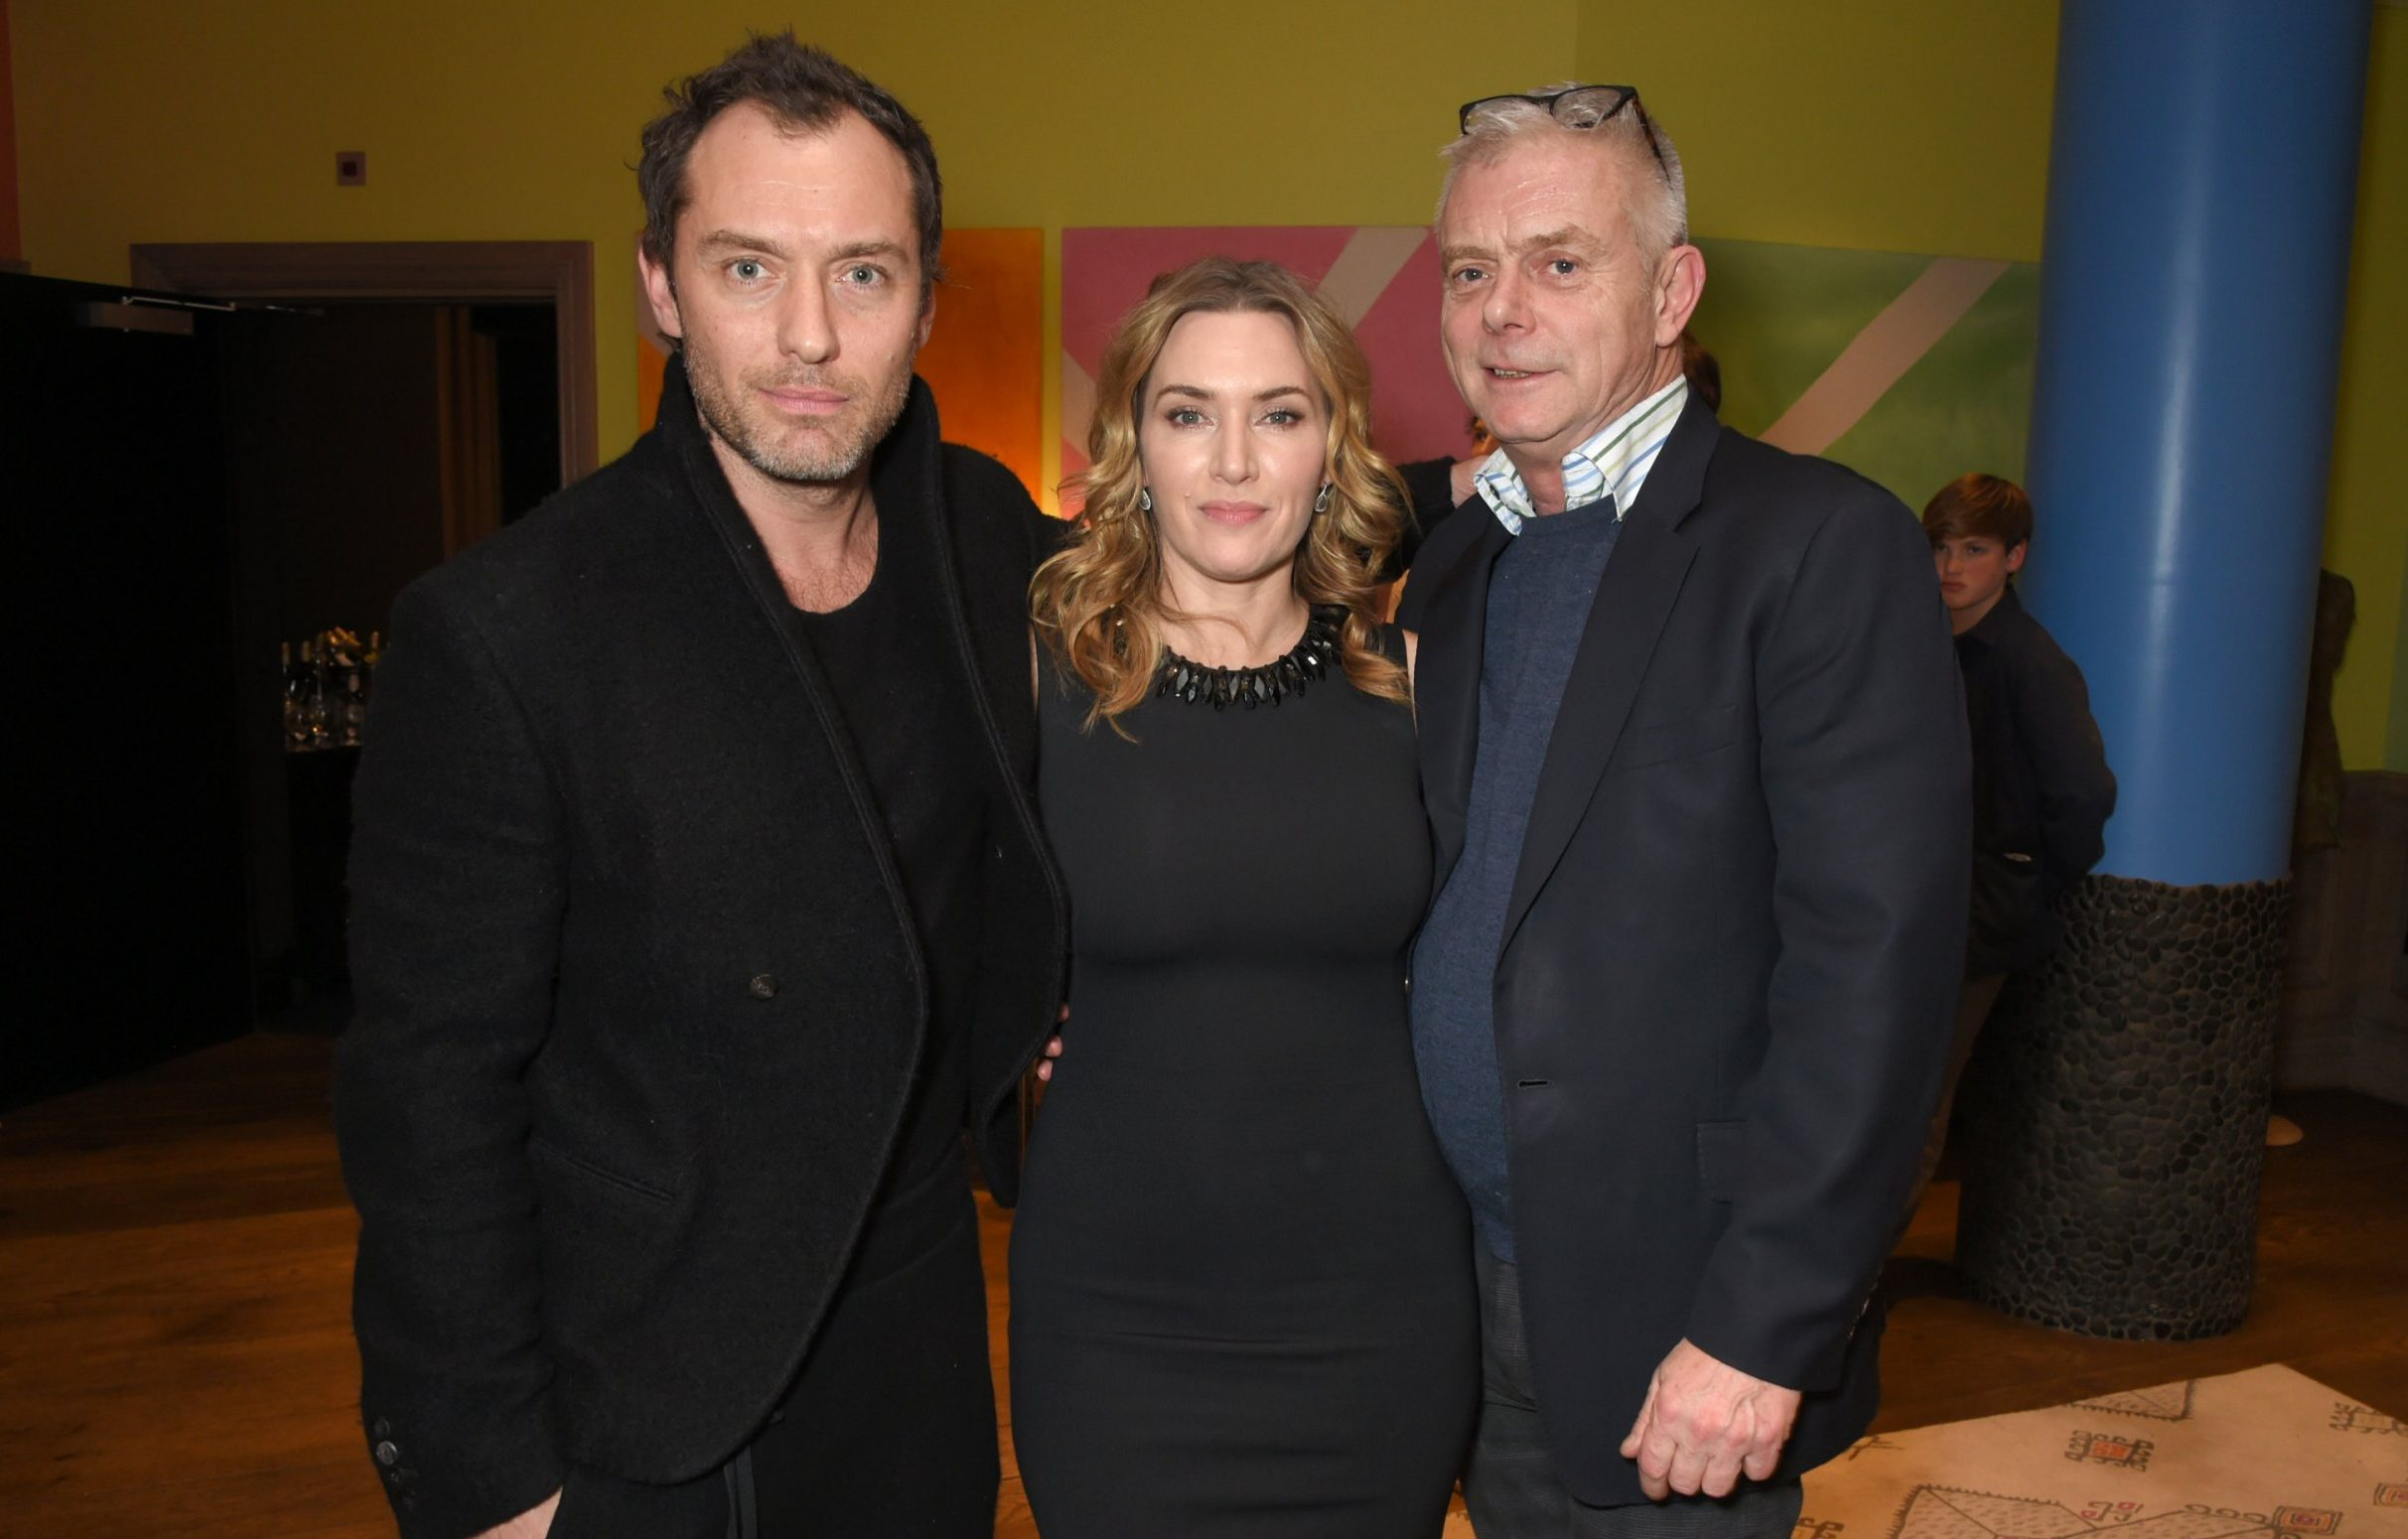 Kate Winslet and Jude Law reunite 11 years after ultimate Christmas movie The Holiday